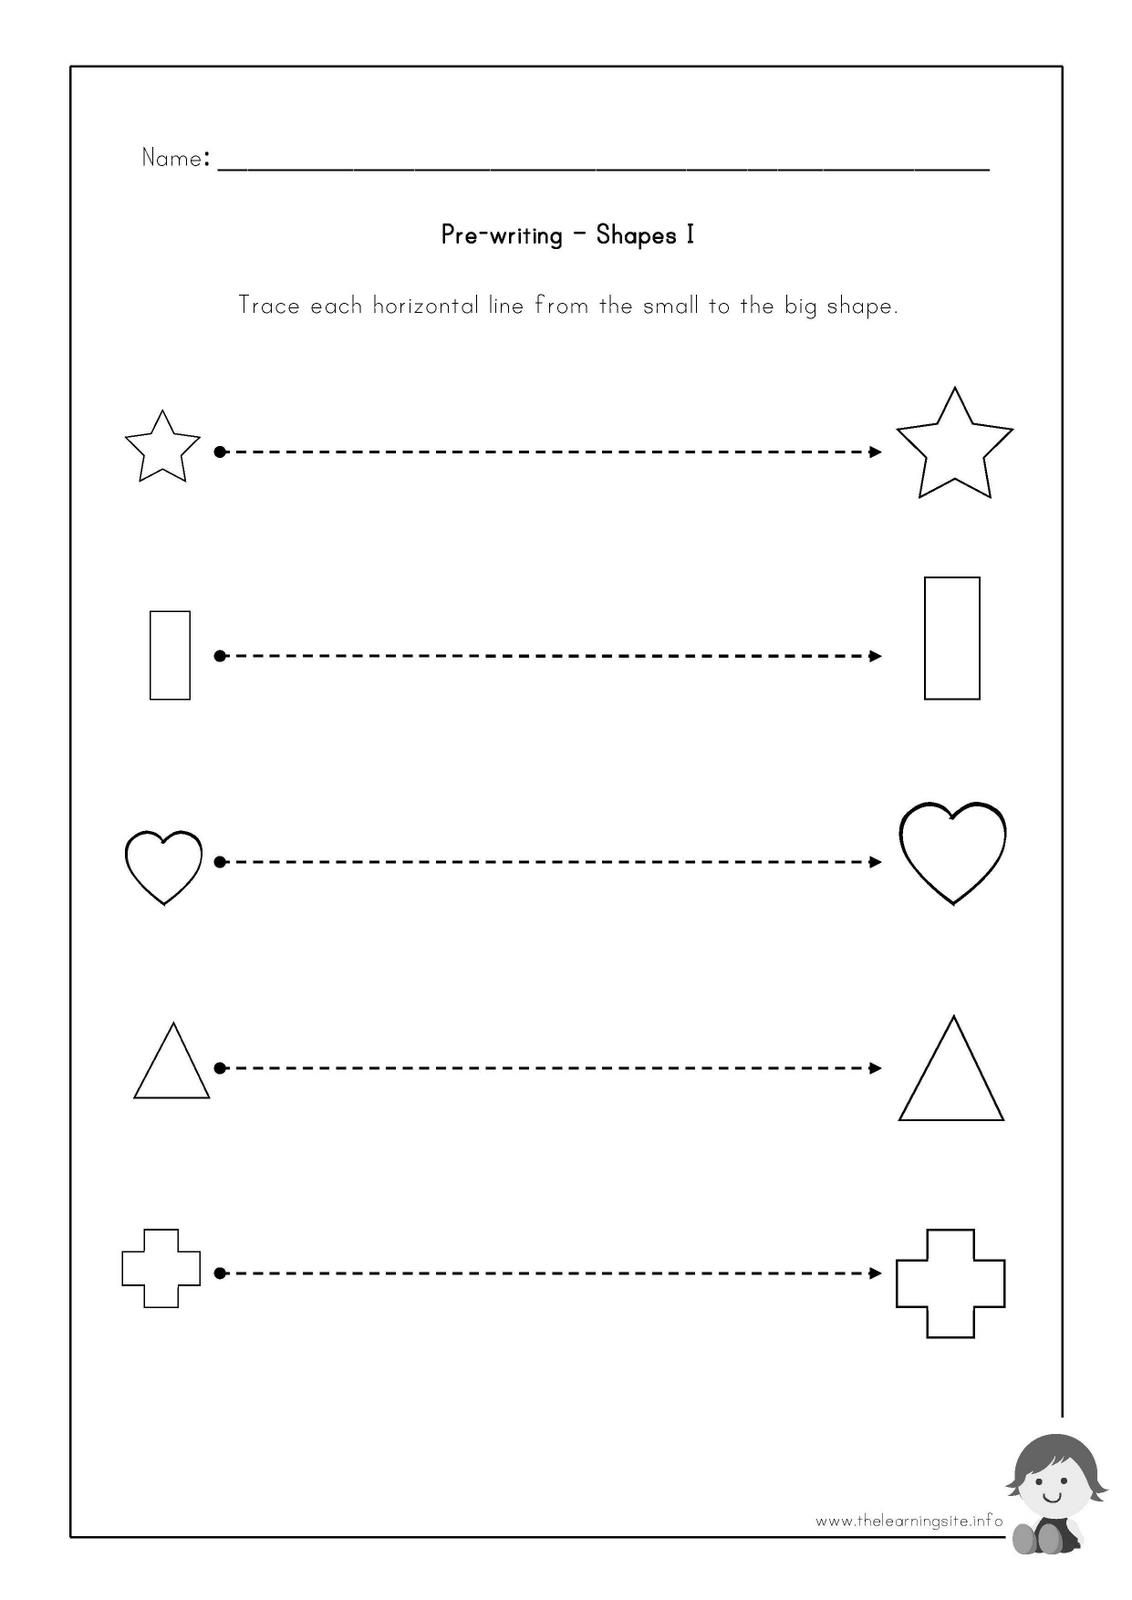 Preschool Writing Worksheets : The learning site pre writing worksheets shapes